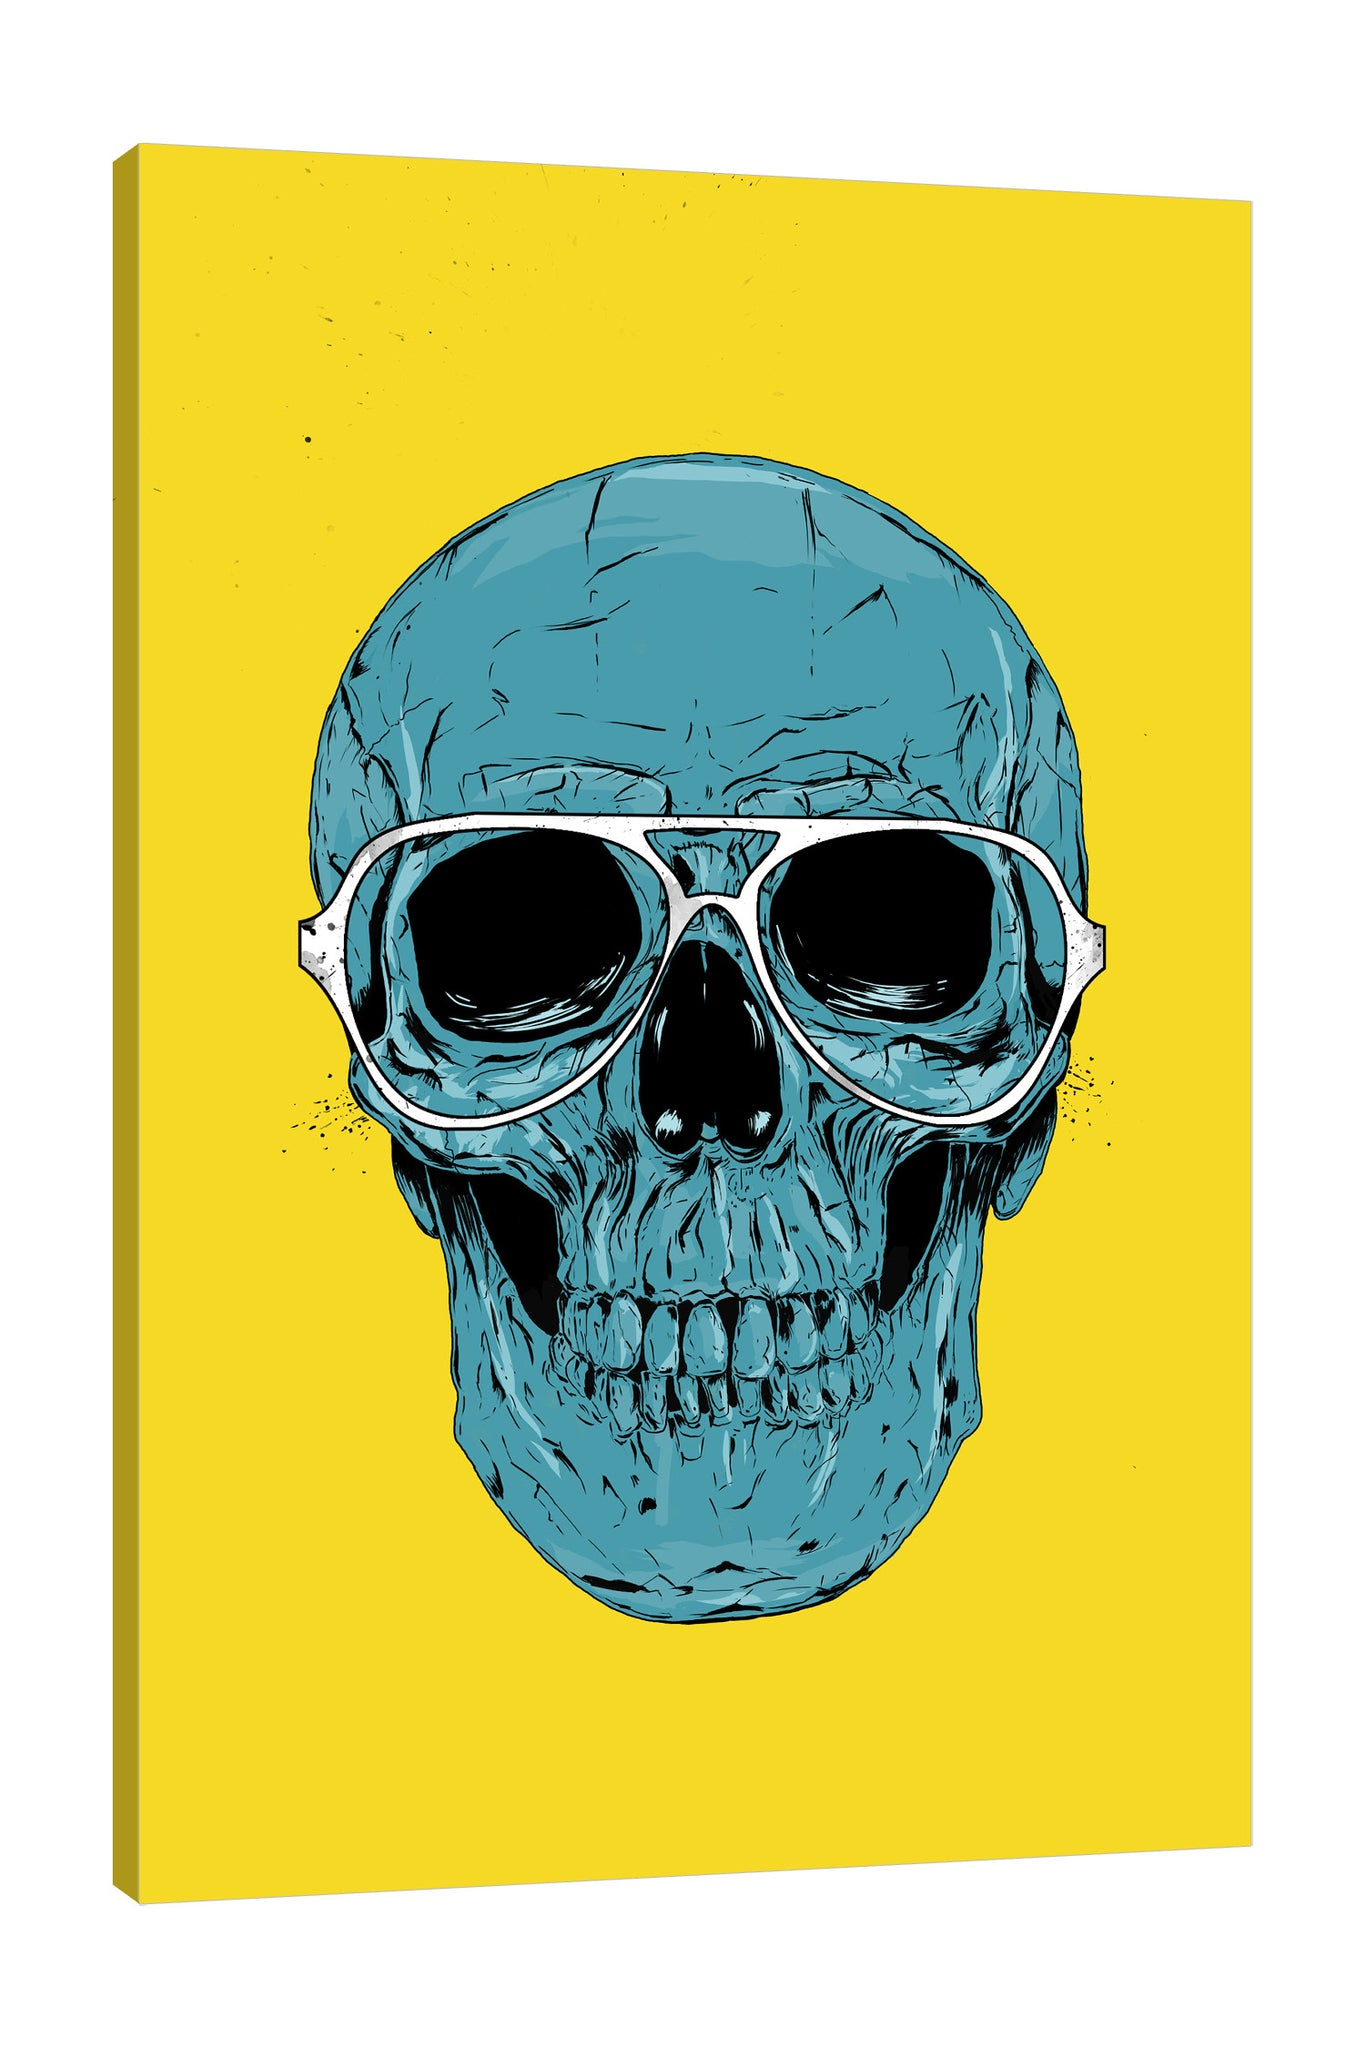 Balazs-Solti,Modern & Contemporary,Entertainment,skull,skulls,bones,bone,sunglasses,sunglass,eyeglass,eyeglasses,lines,white,black,blue,yellow,Tan White,Turquoise Blue,White,Red